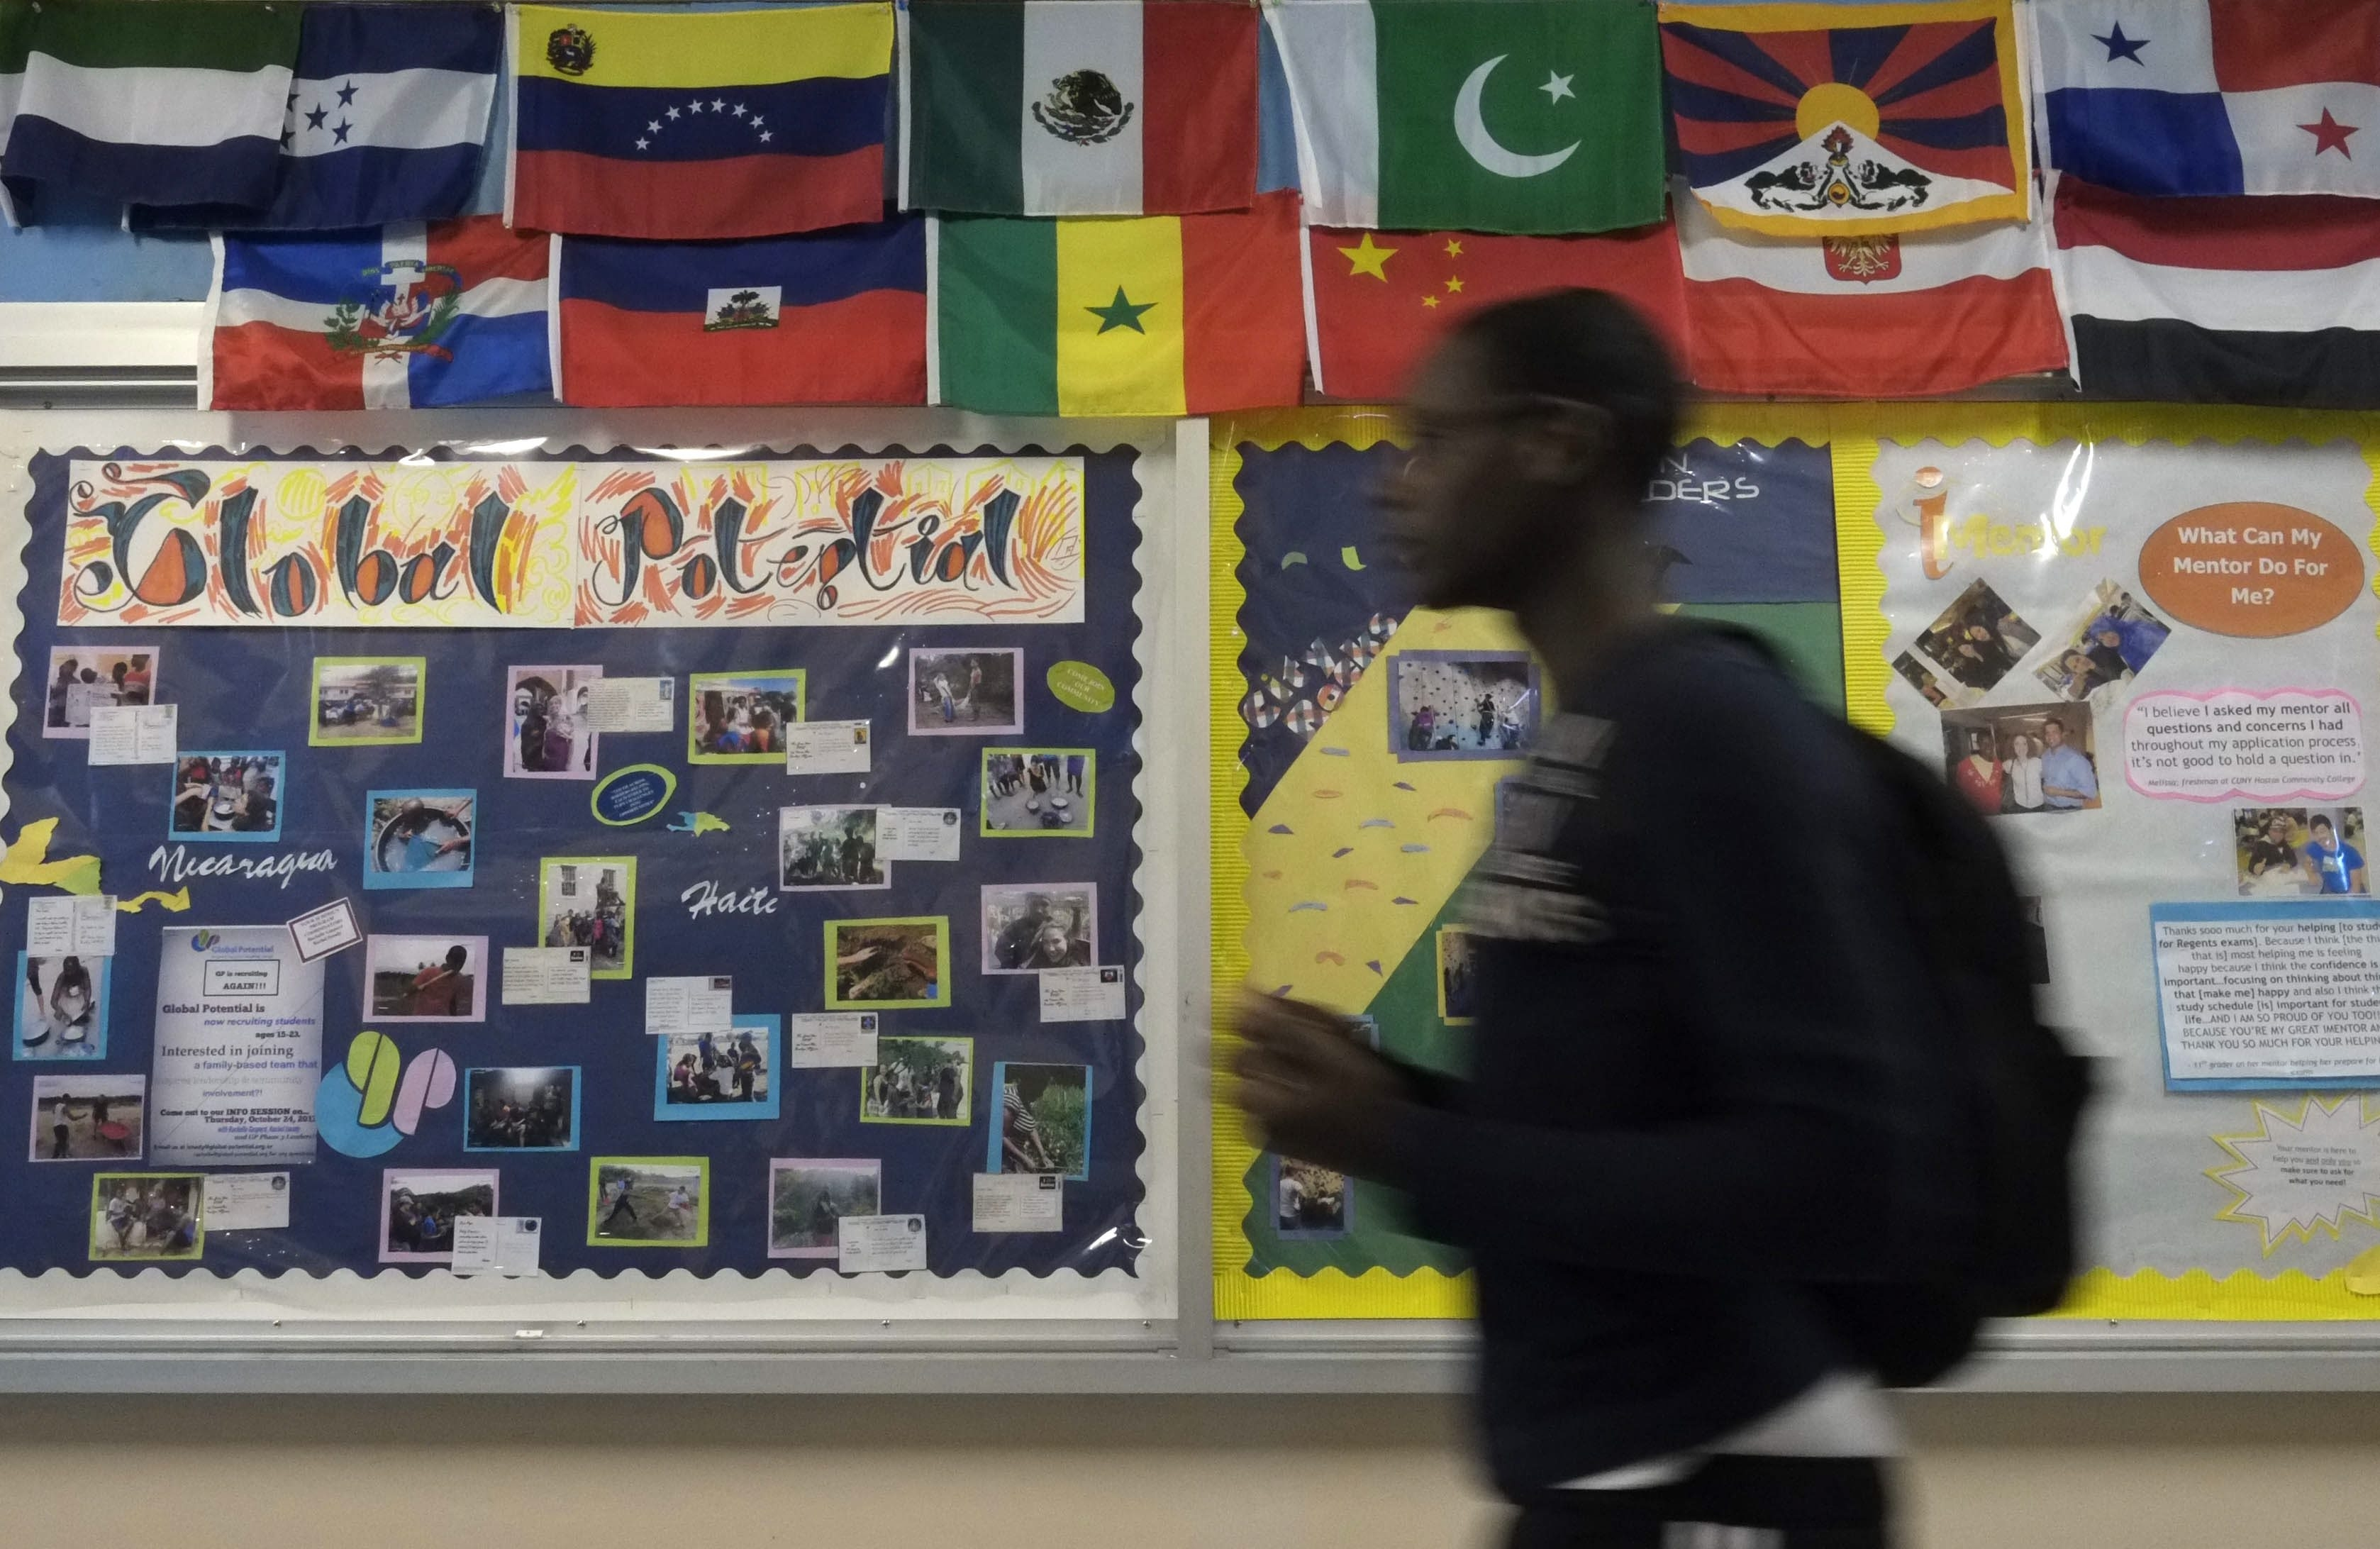 The International School at Prospect Heights, which has a 66 percent four-year graduation rate, could be a road map for Buffalo's Lafayette High School, where only 26 percent of the students graduate on time.